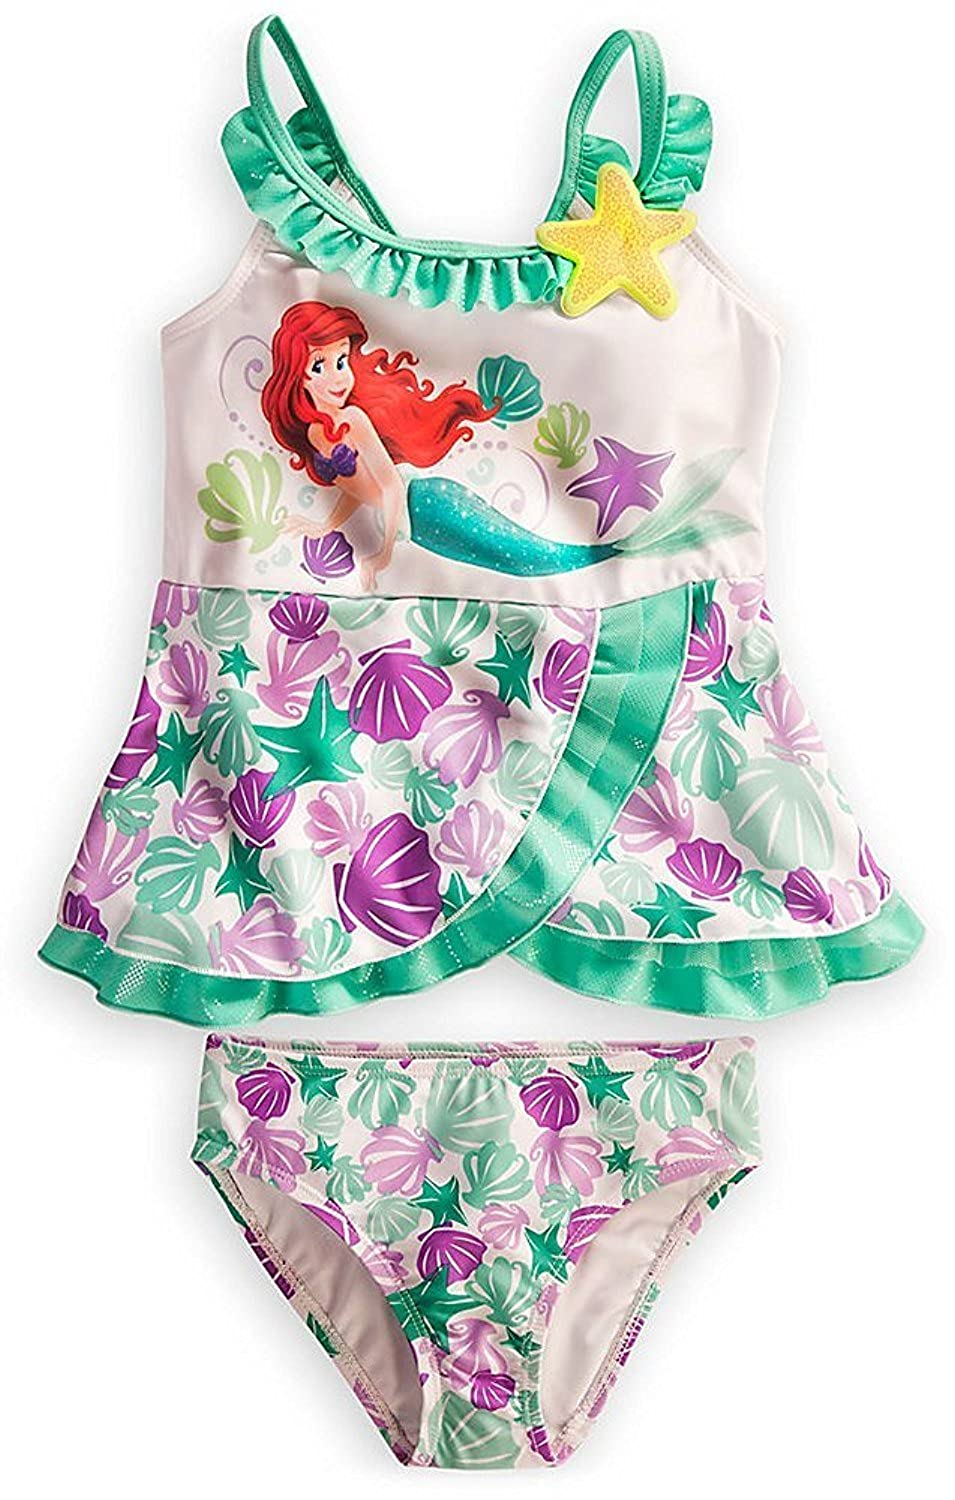 8ddb949a998ab Amazon.com: Disney Store Princess Ariel The Little Mermaid Swimsuit: Deluxe  2-Piece Swimwear: Clothing